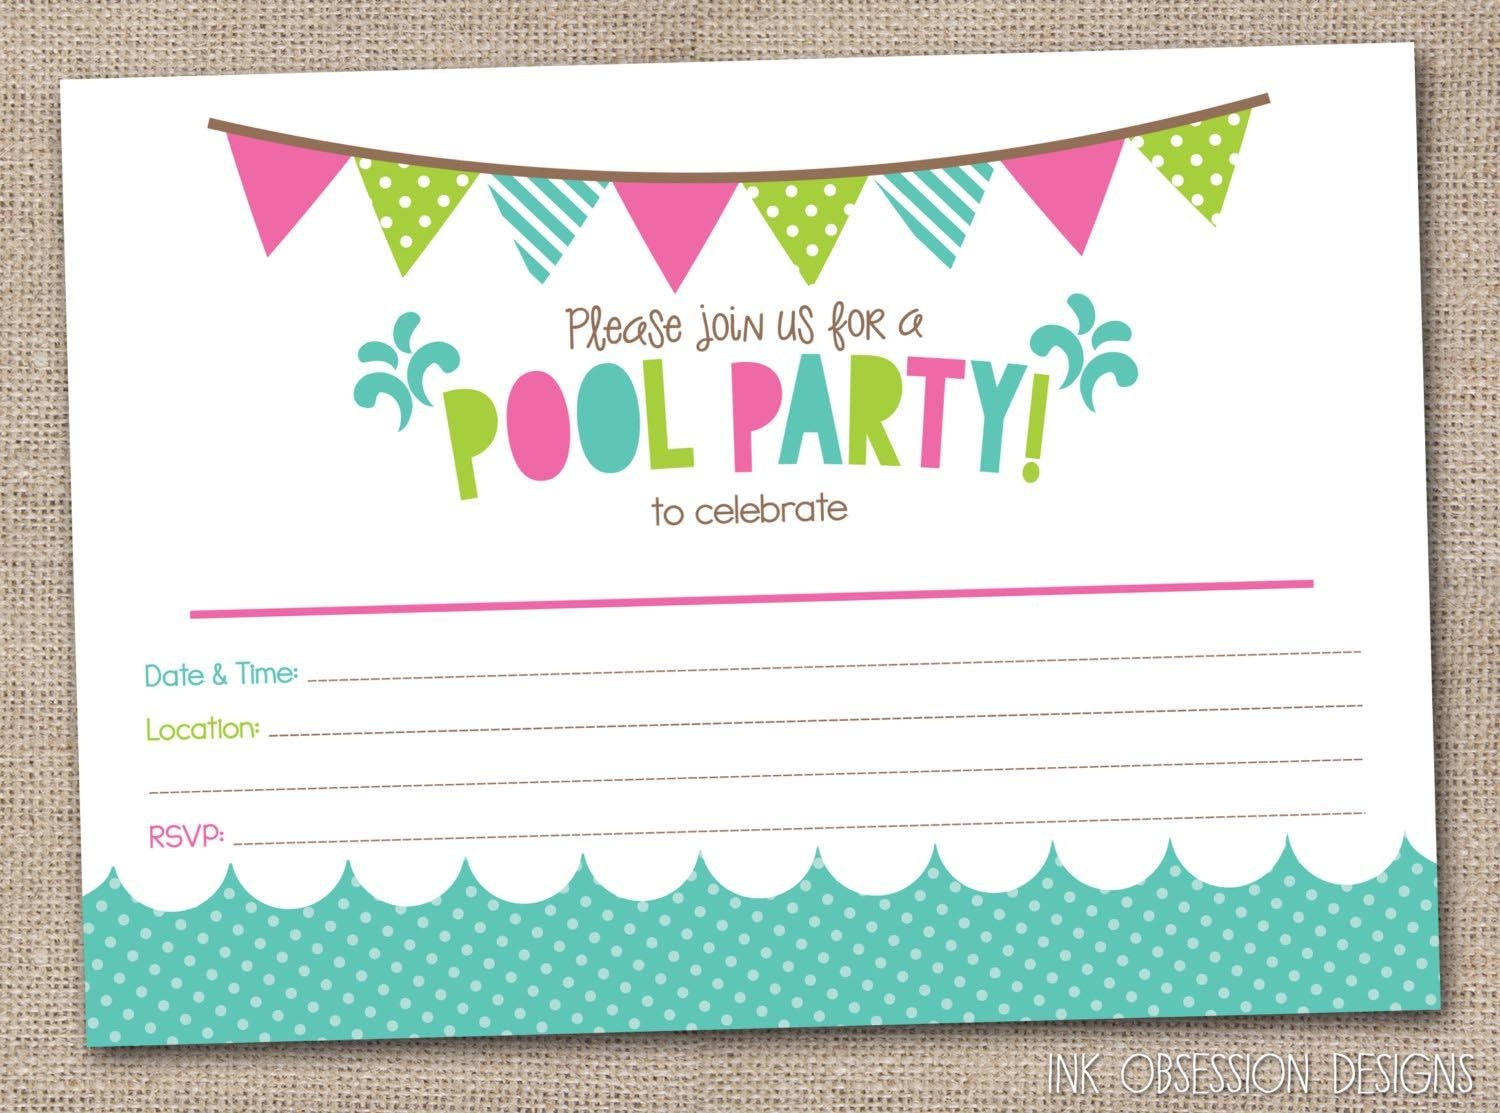 Free Printable Pool Party Birthday Invitations | Party Invitations - Free Printable Pool Party Birthday Invitations